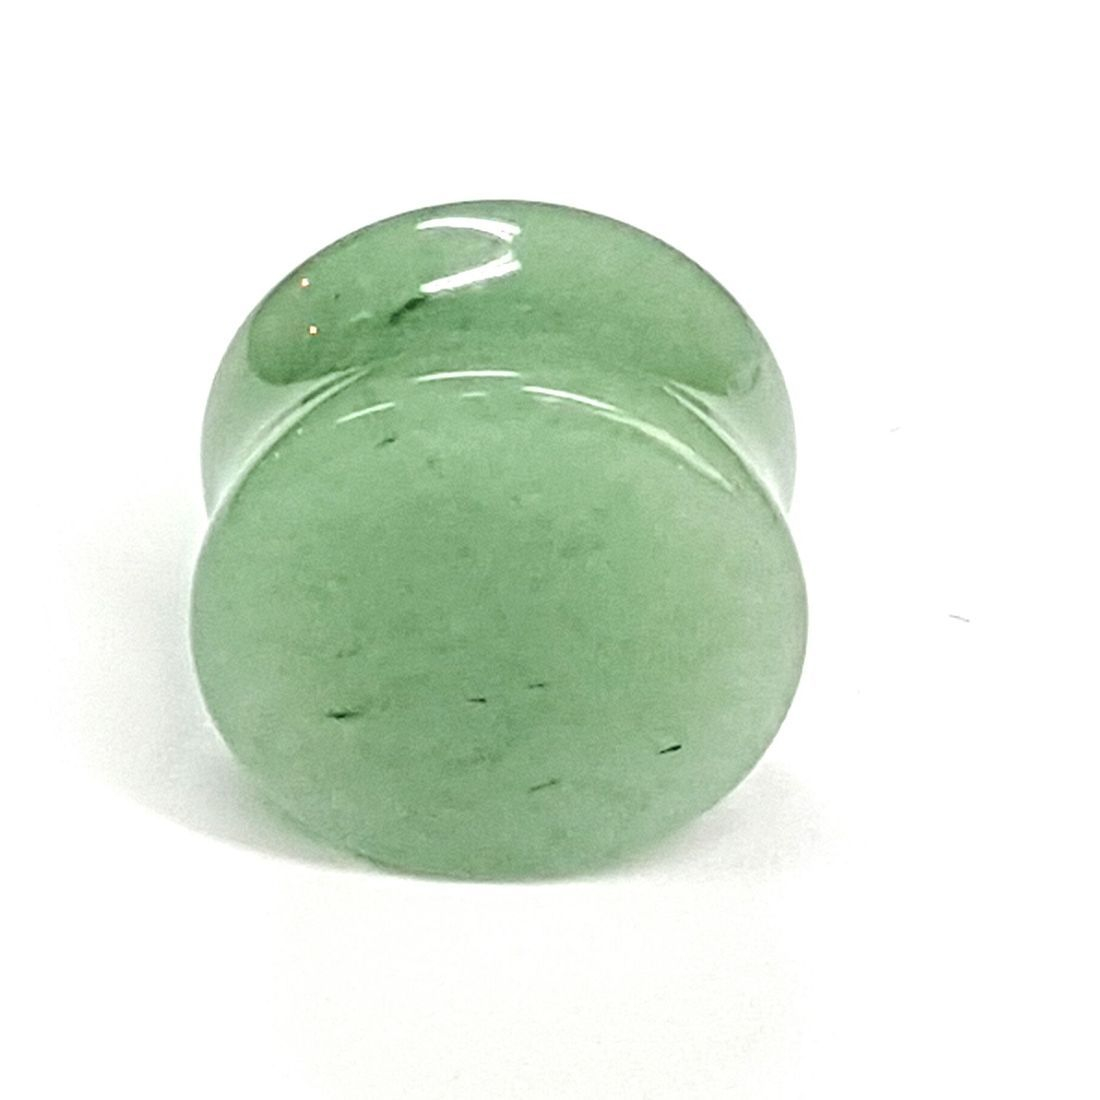 20mm natural stone plug available at Kazbah online and our Leicester City Centre store